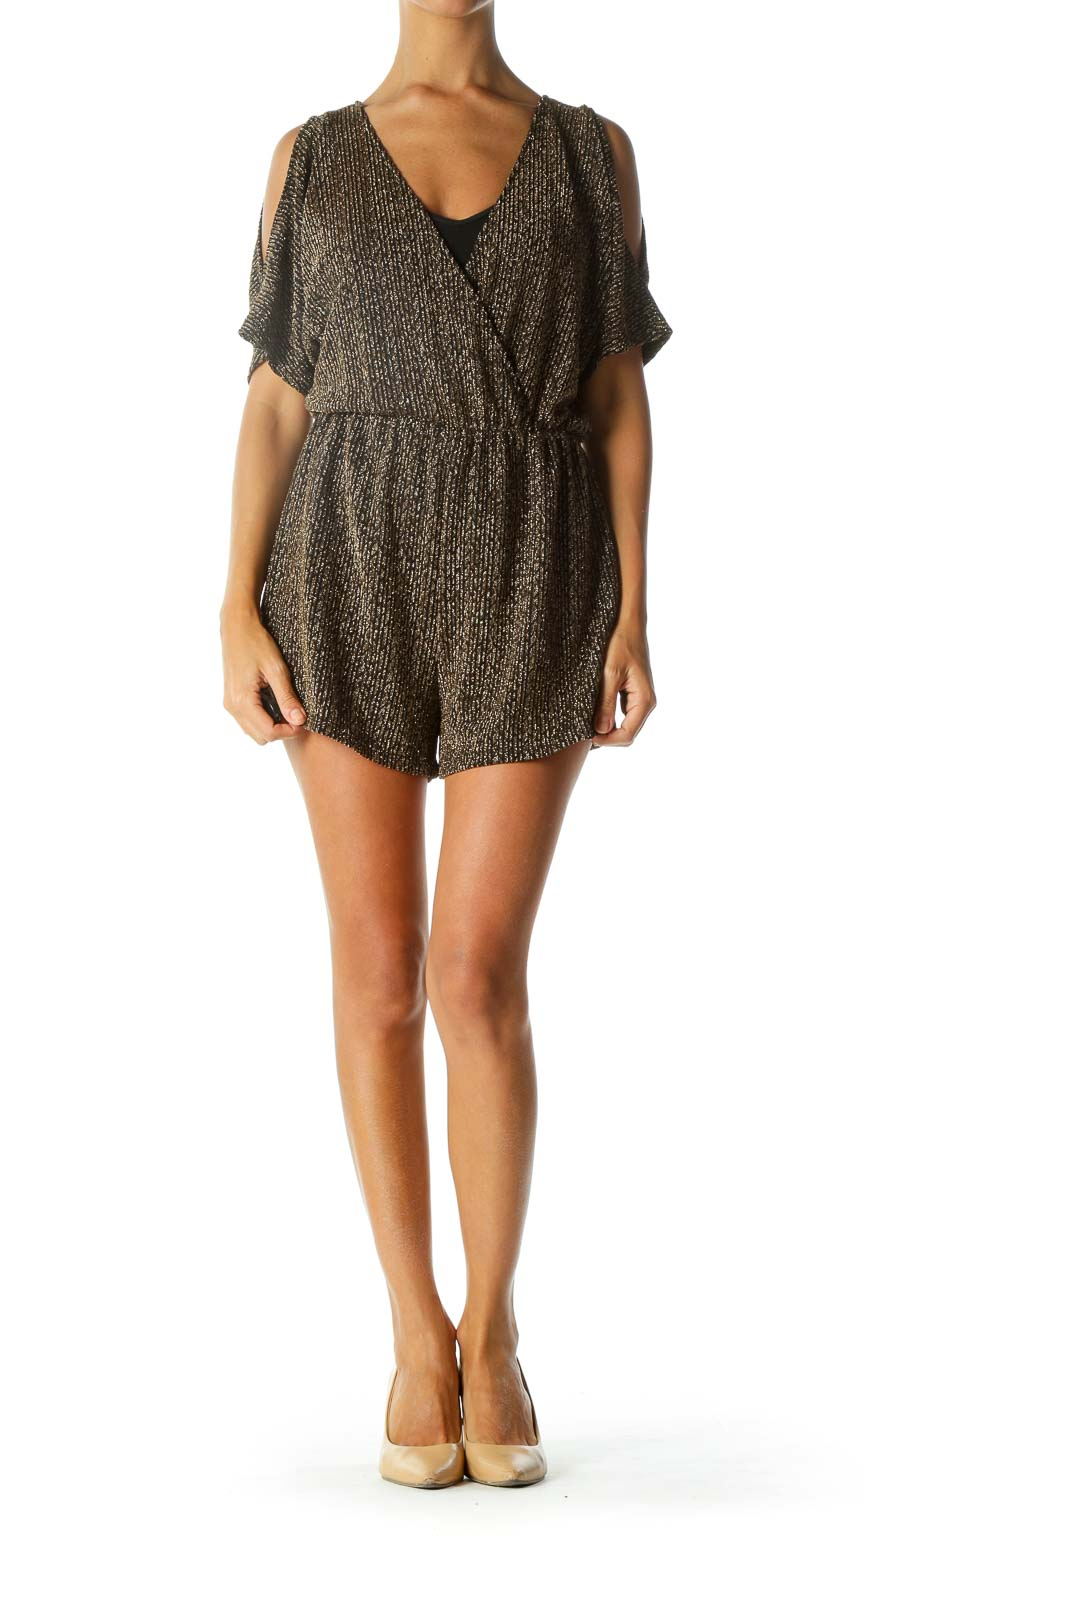 Black Gold Surplice Textured Cold Shoulder Short Sleeve Romper